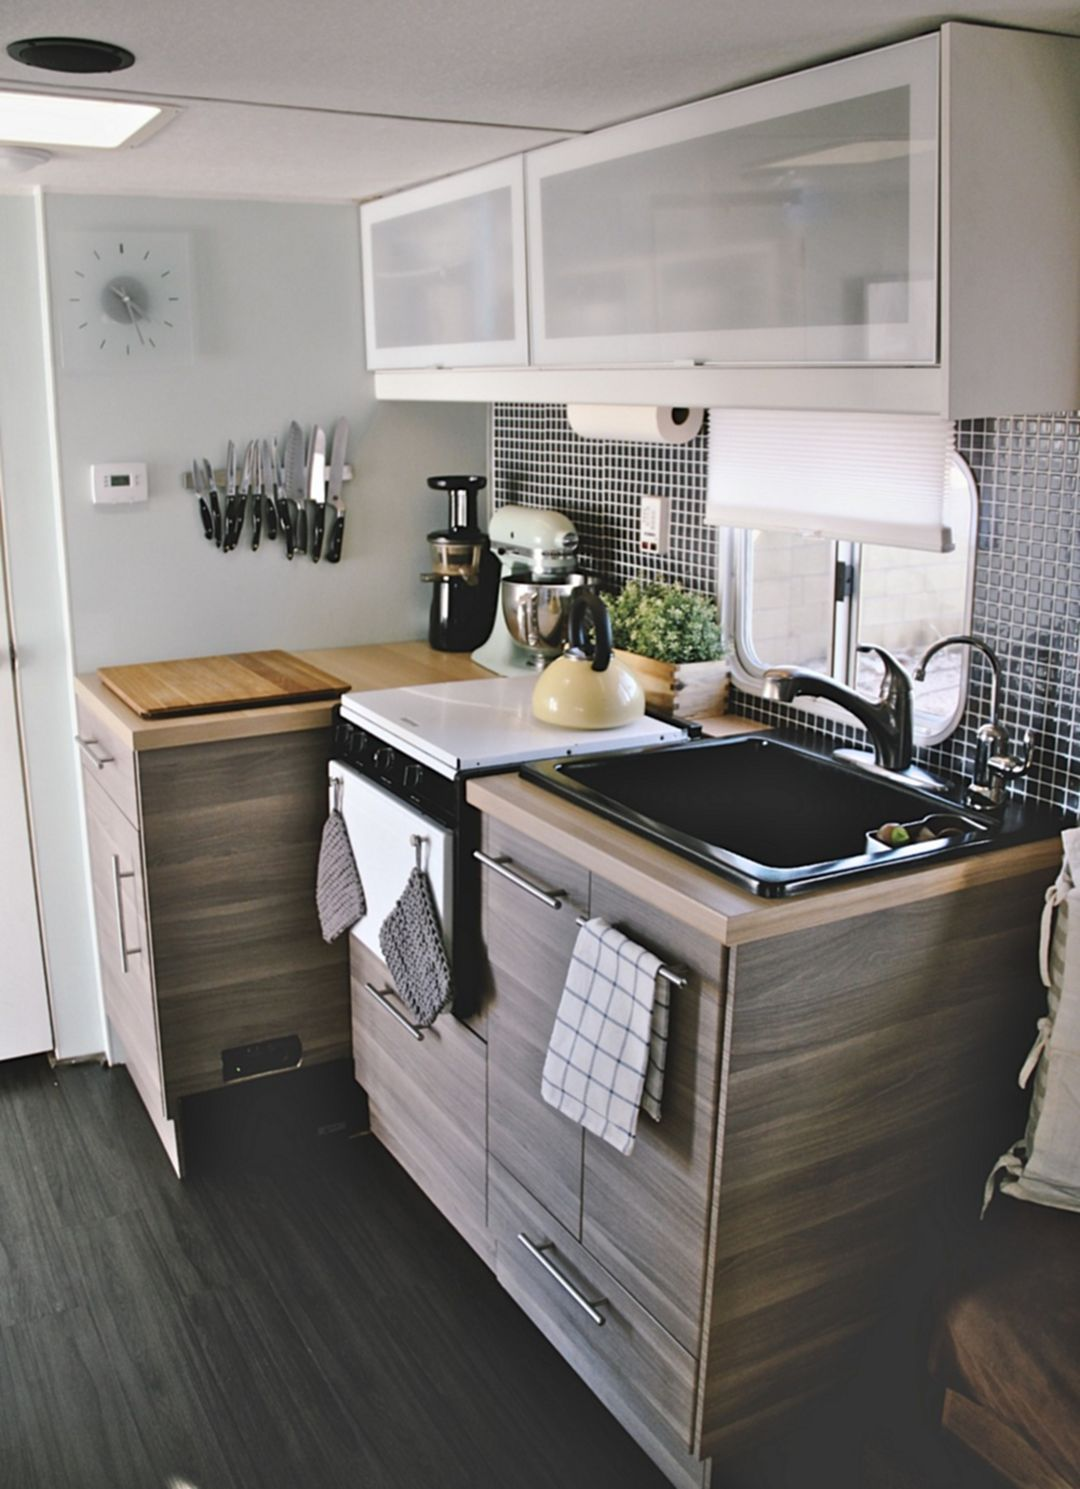 Small camper interior cool best camper interior ideas easy and fast to redecor your